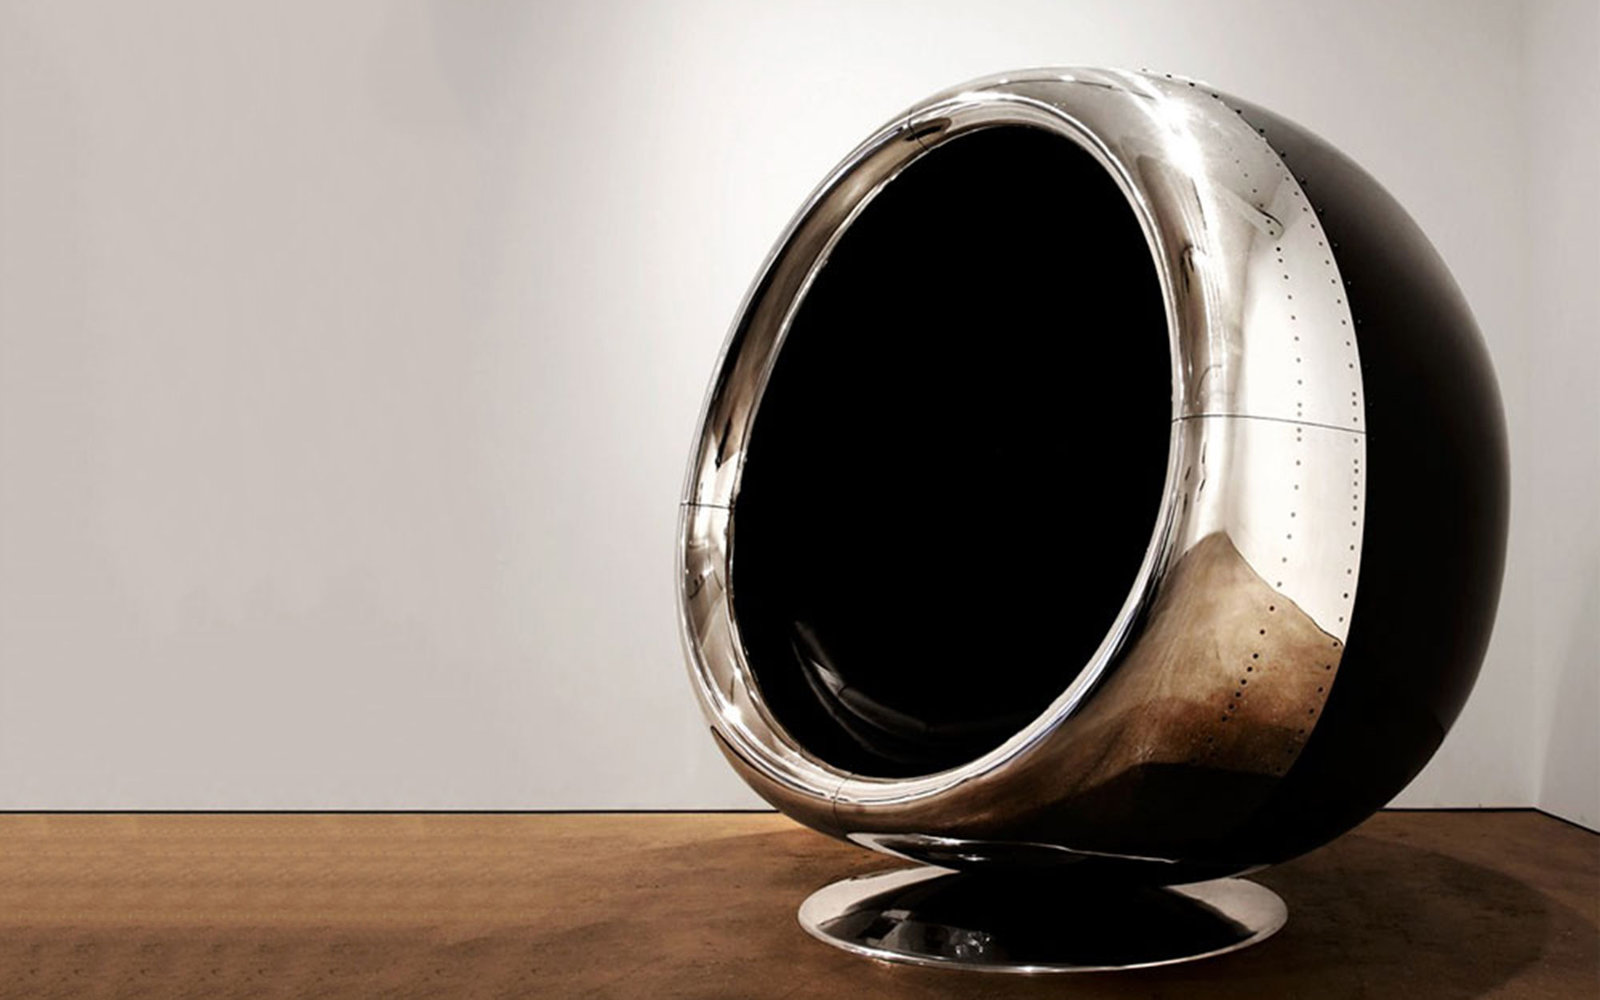 Upcycled Super Comfy Looking Chair Made From An Airplane